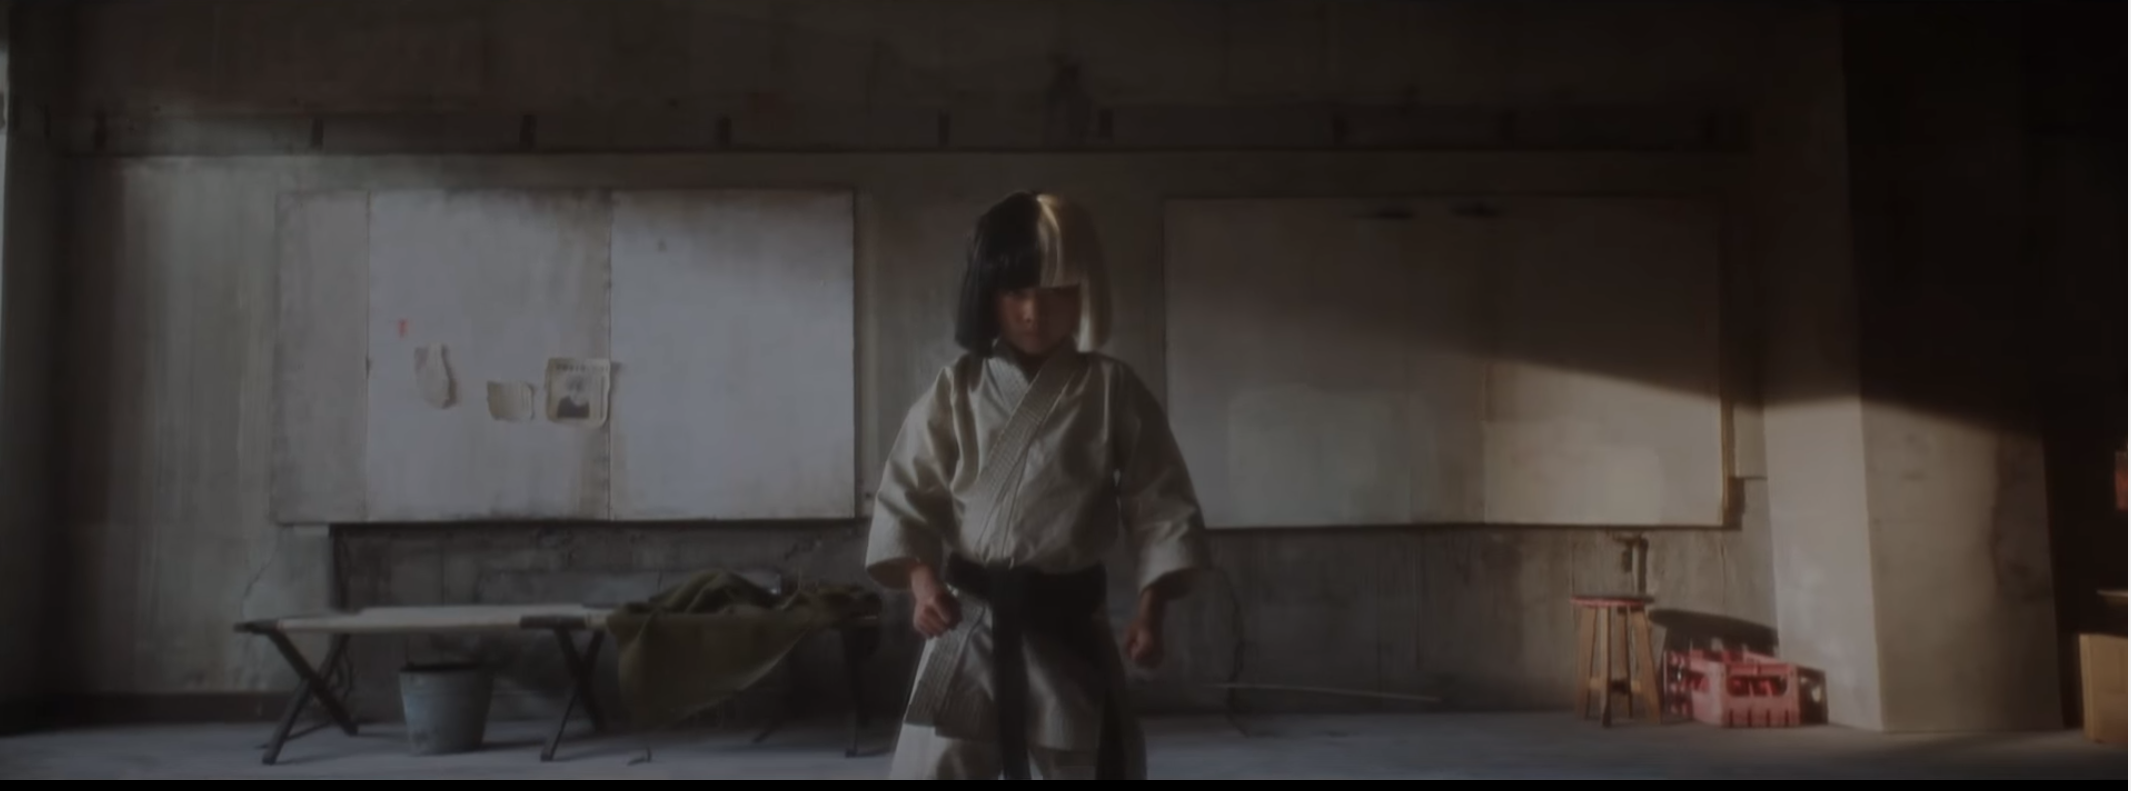 Sia´s New Video 'Alive' Keeps It Weird In A Childish Kung Fu Kind Of Way